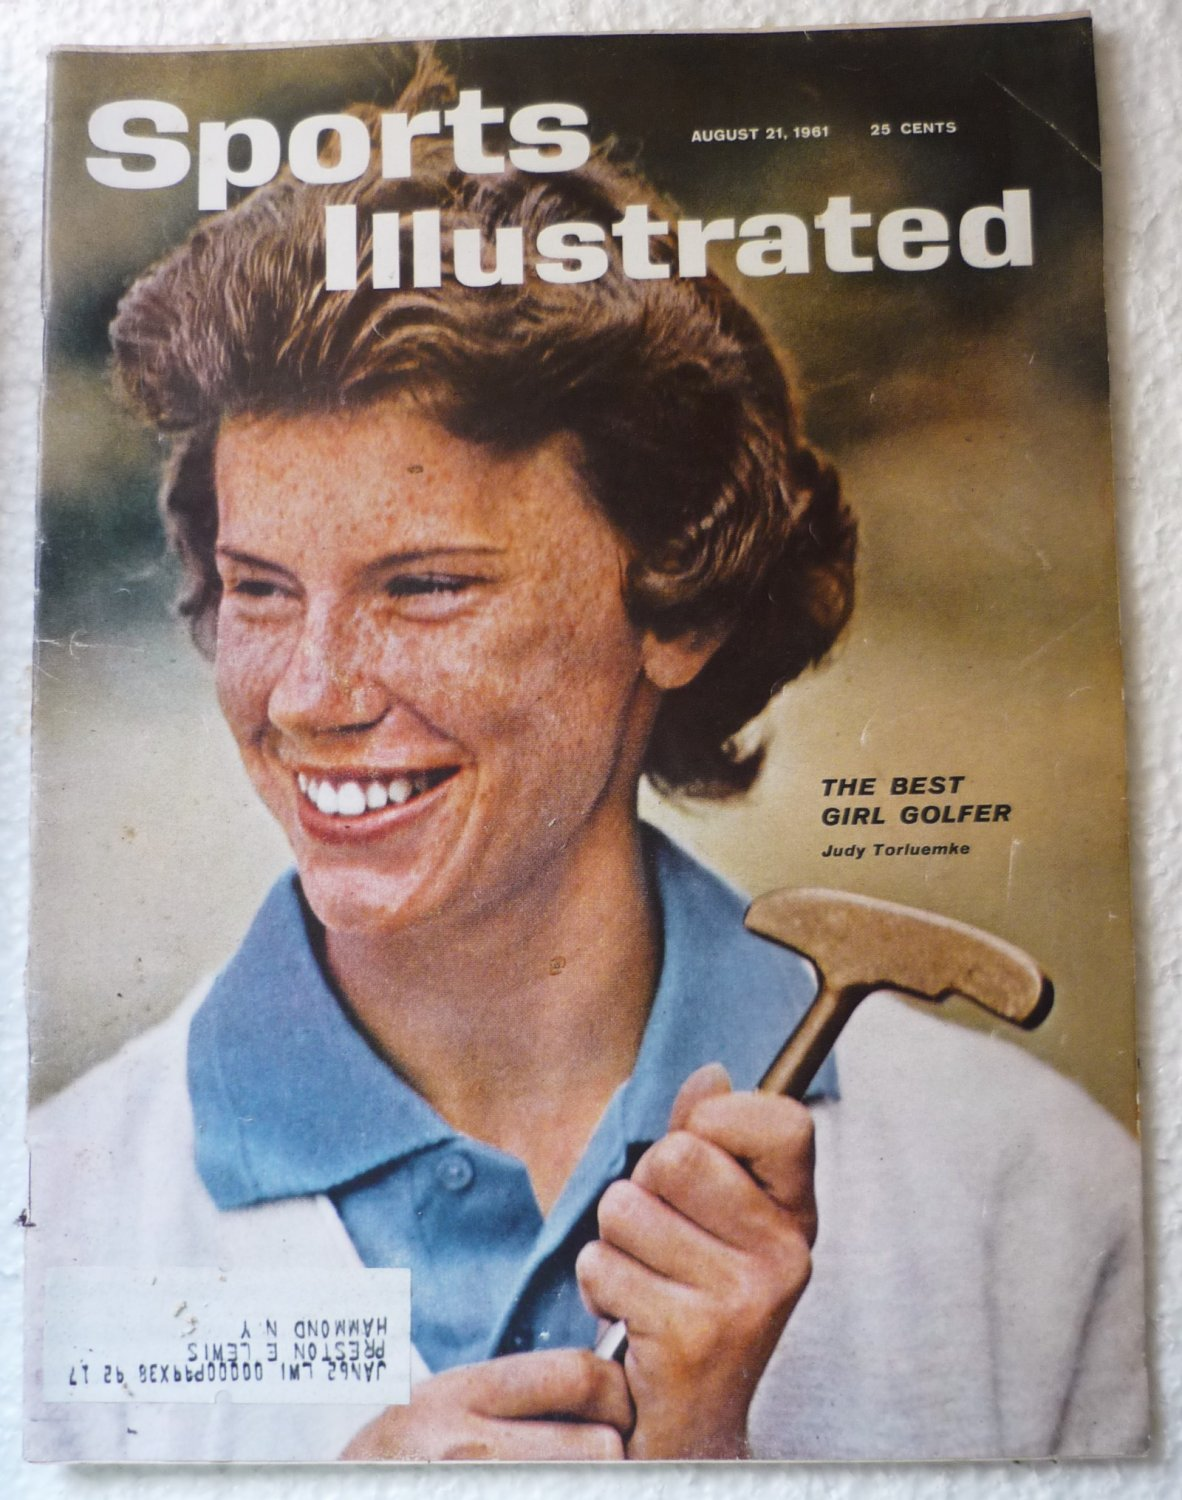 Sports Illustrated August 21 1961 Judy Torluemke on Cover